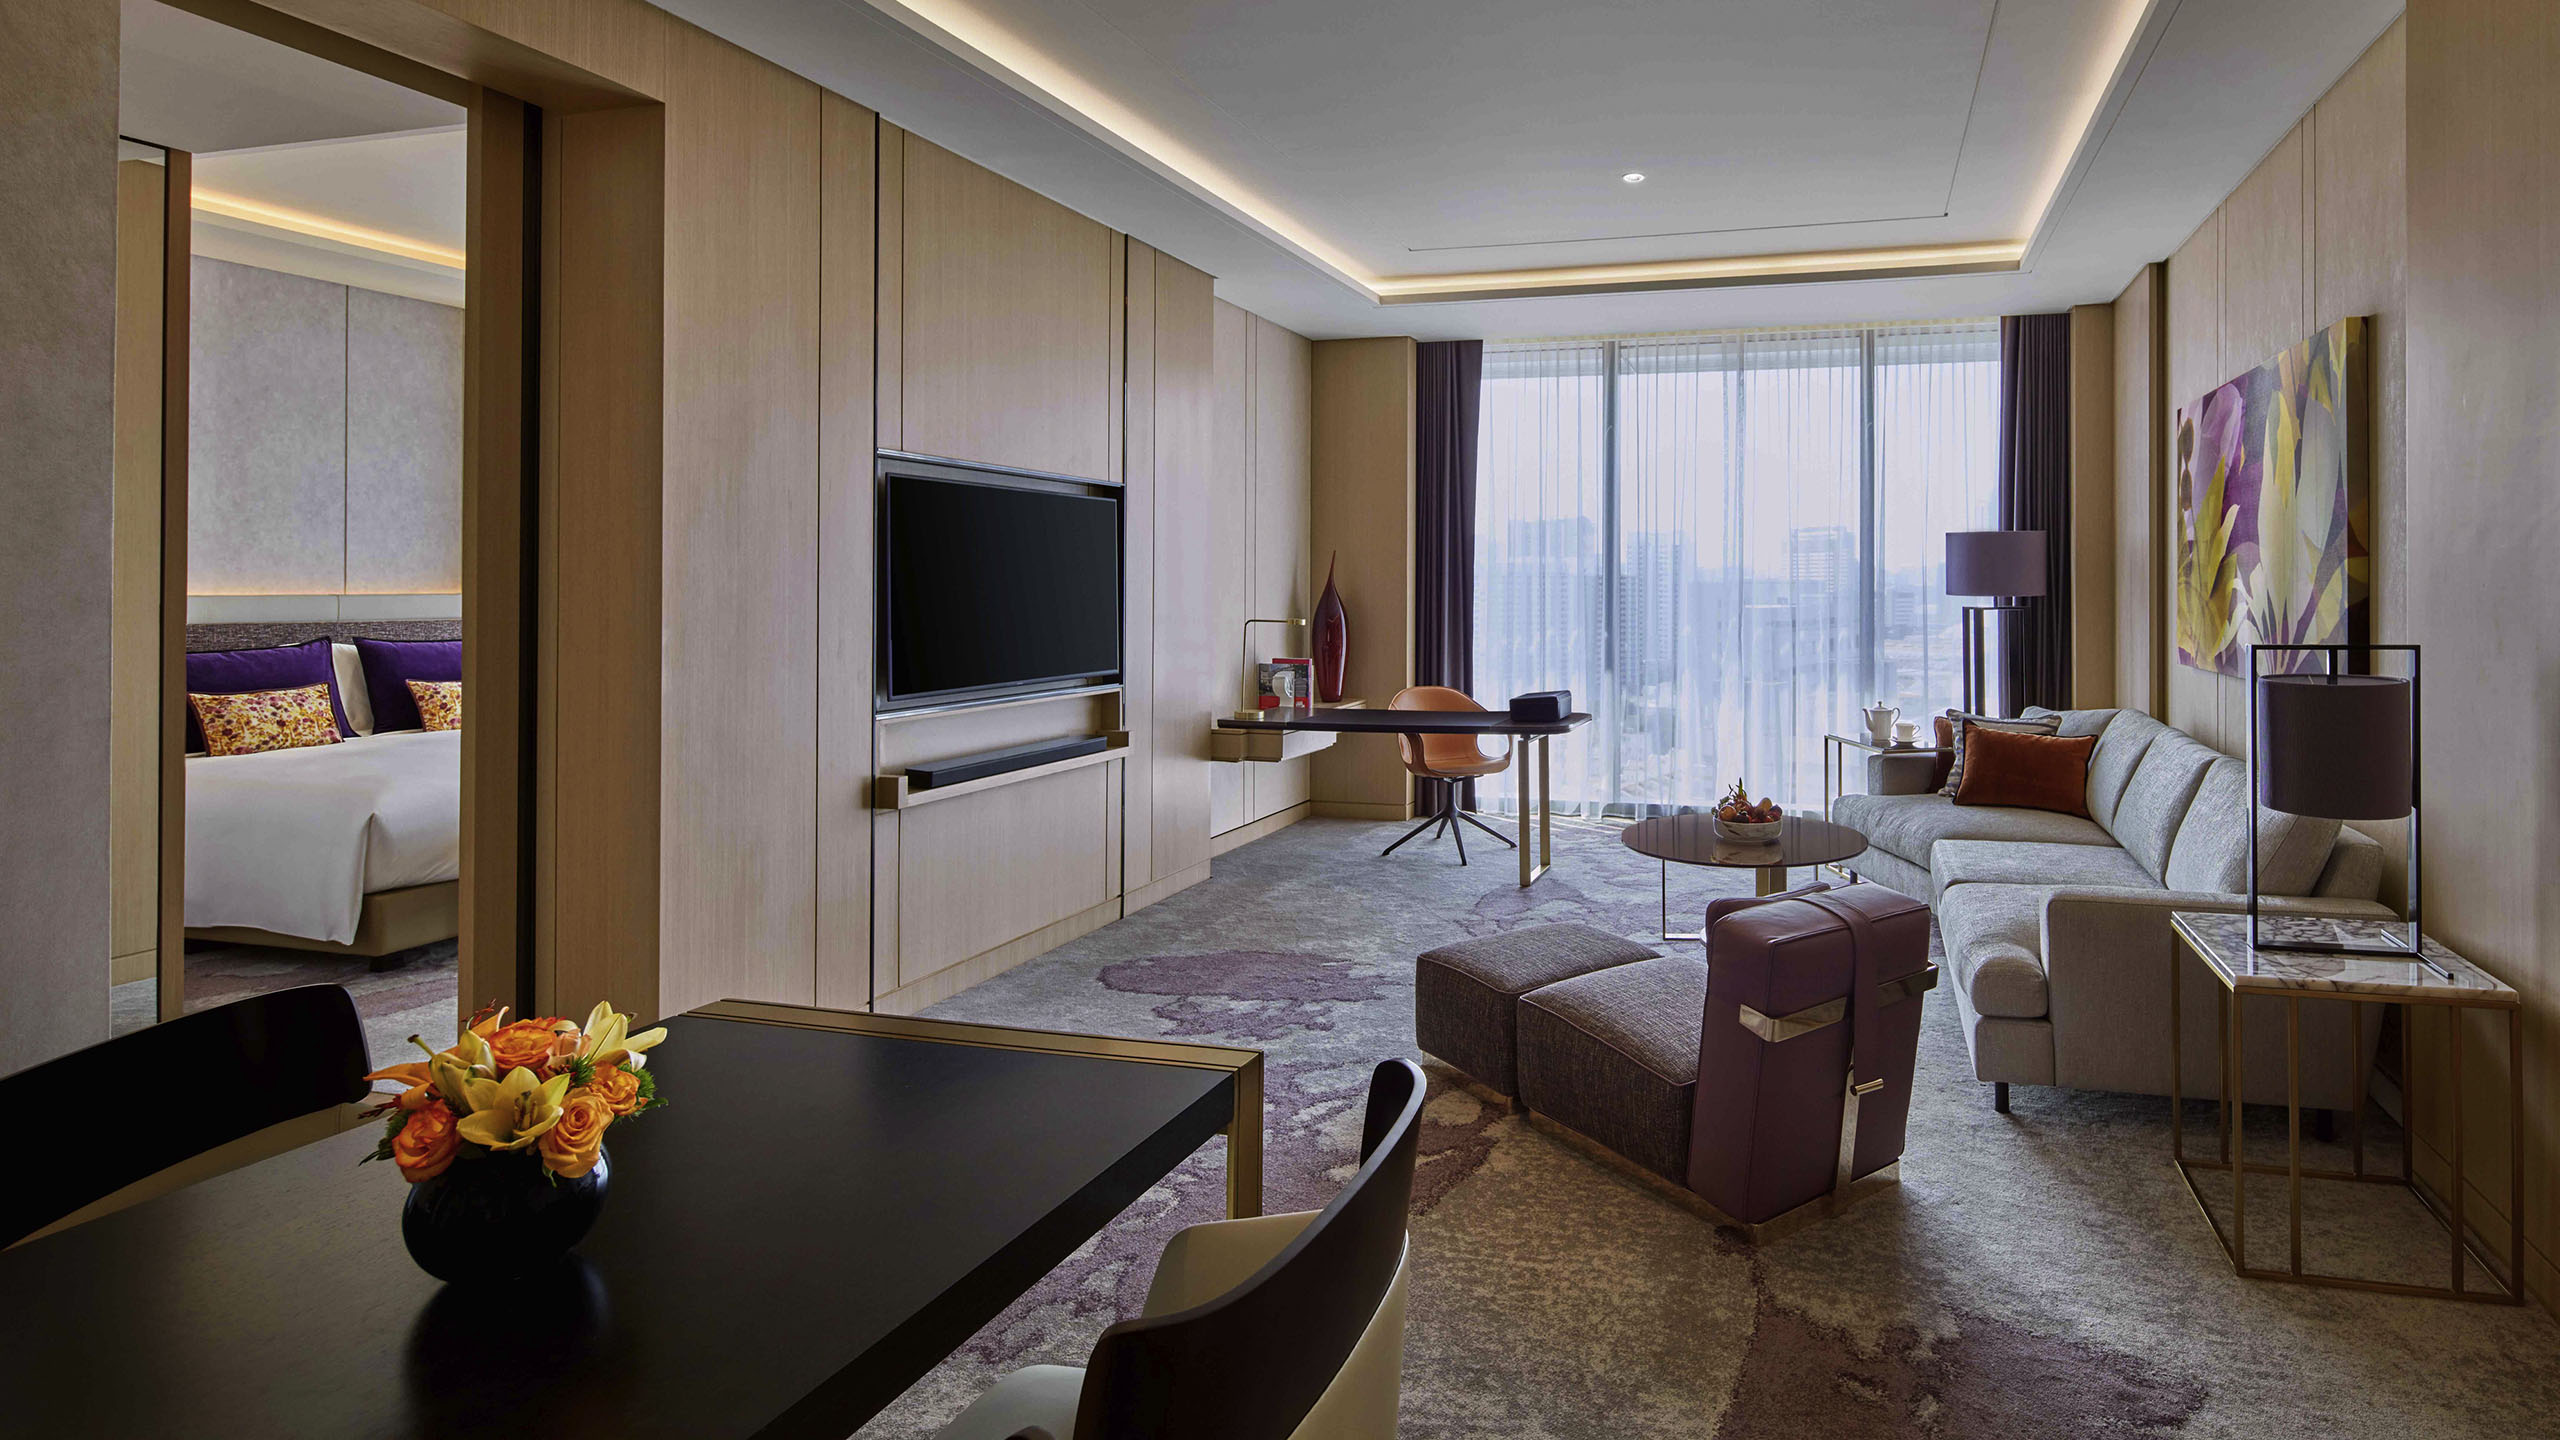 Luxushotel SINGAPUR – Sofitel Singapore City Centre